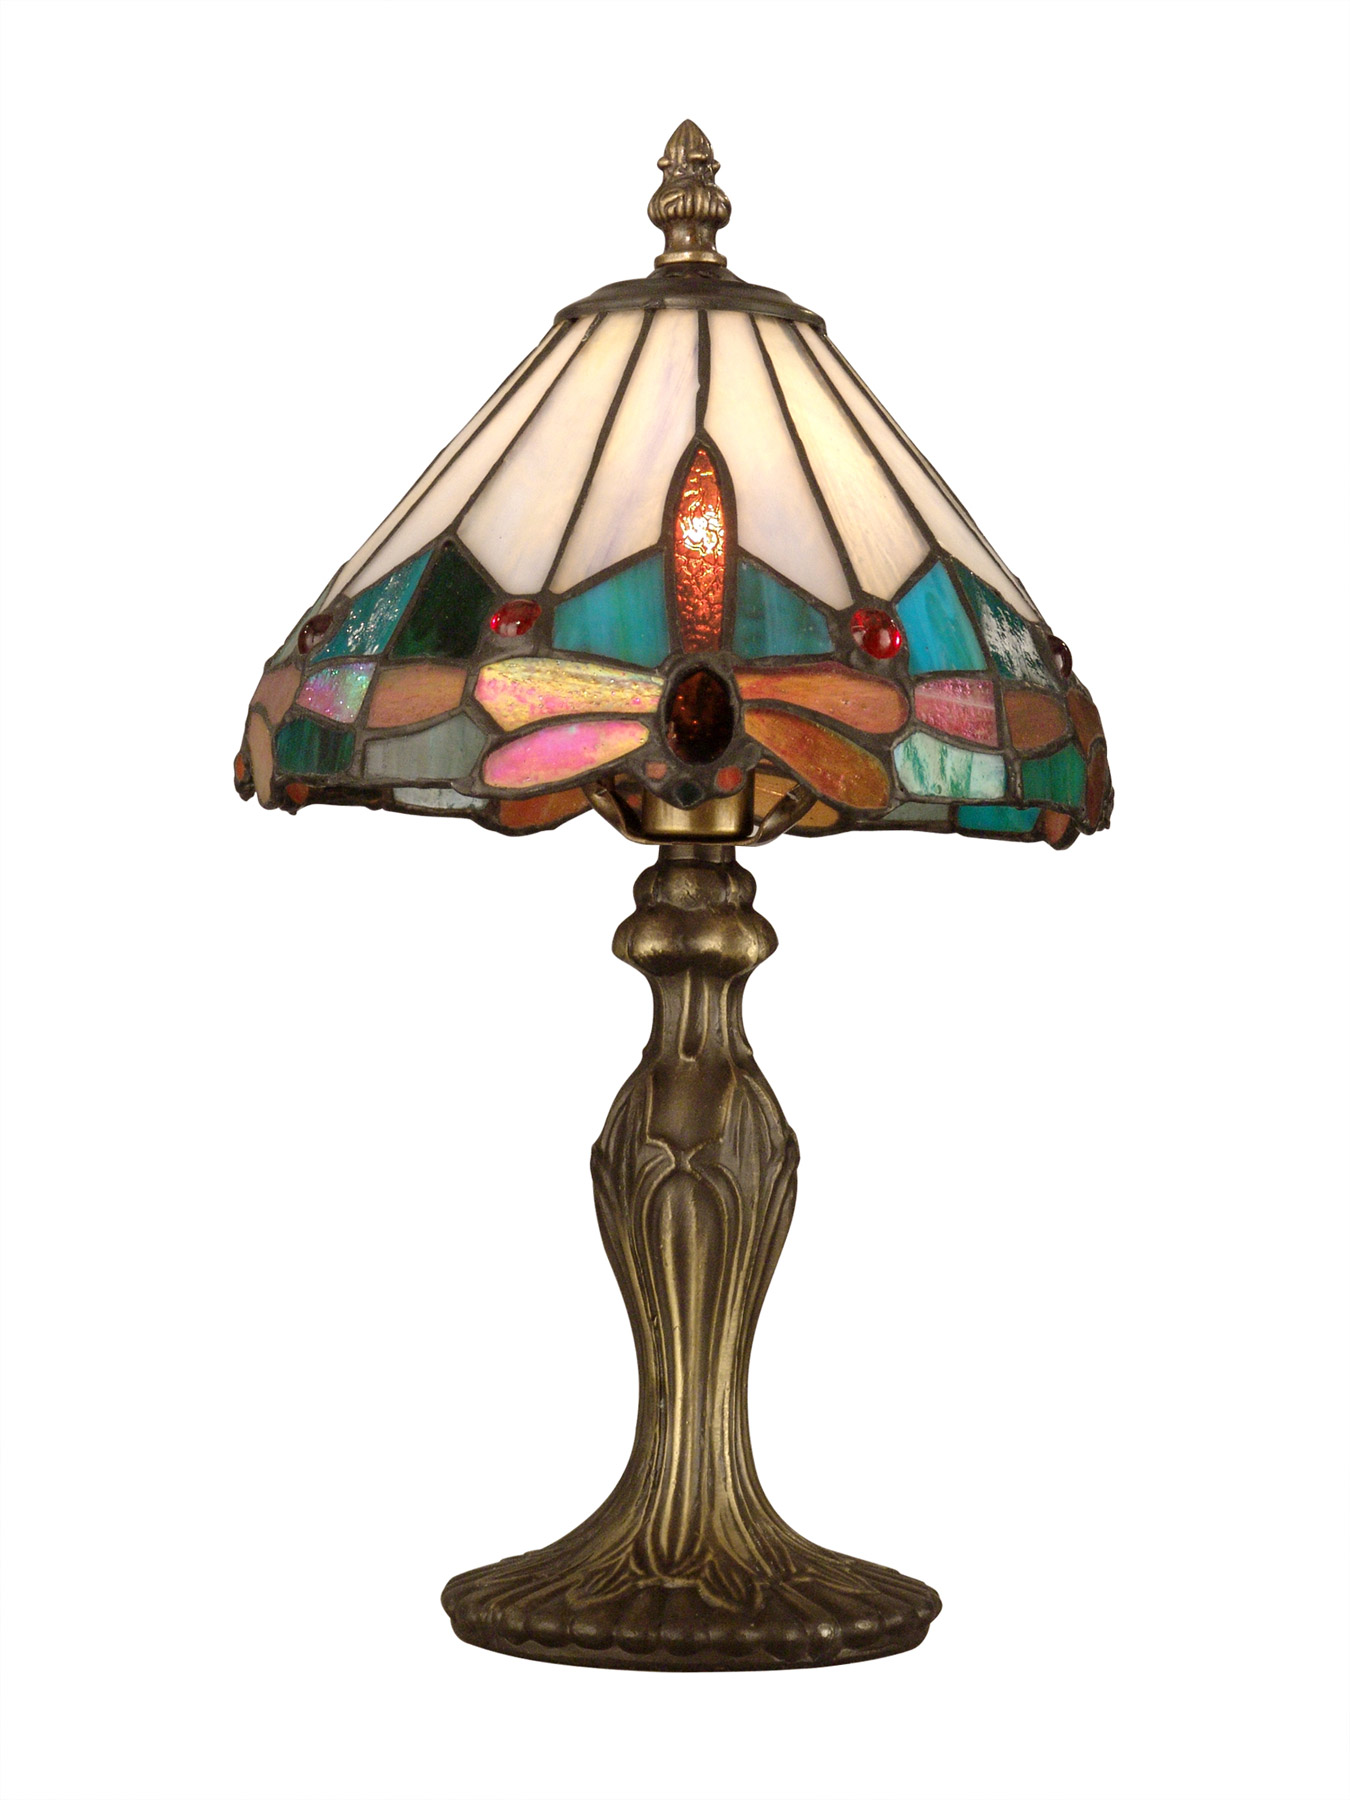 home lamps table lamps accent lamps dale tiffany ta10606. Black Bedroom Furniture Sets. Home Design Ideas